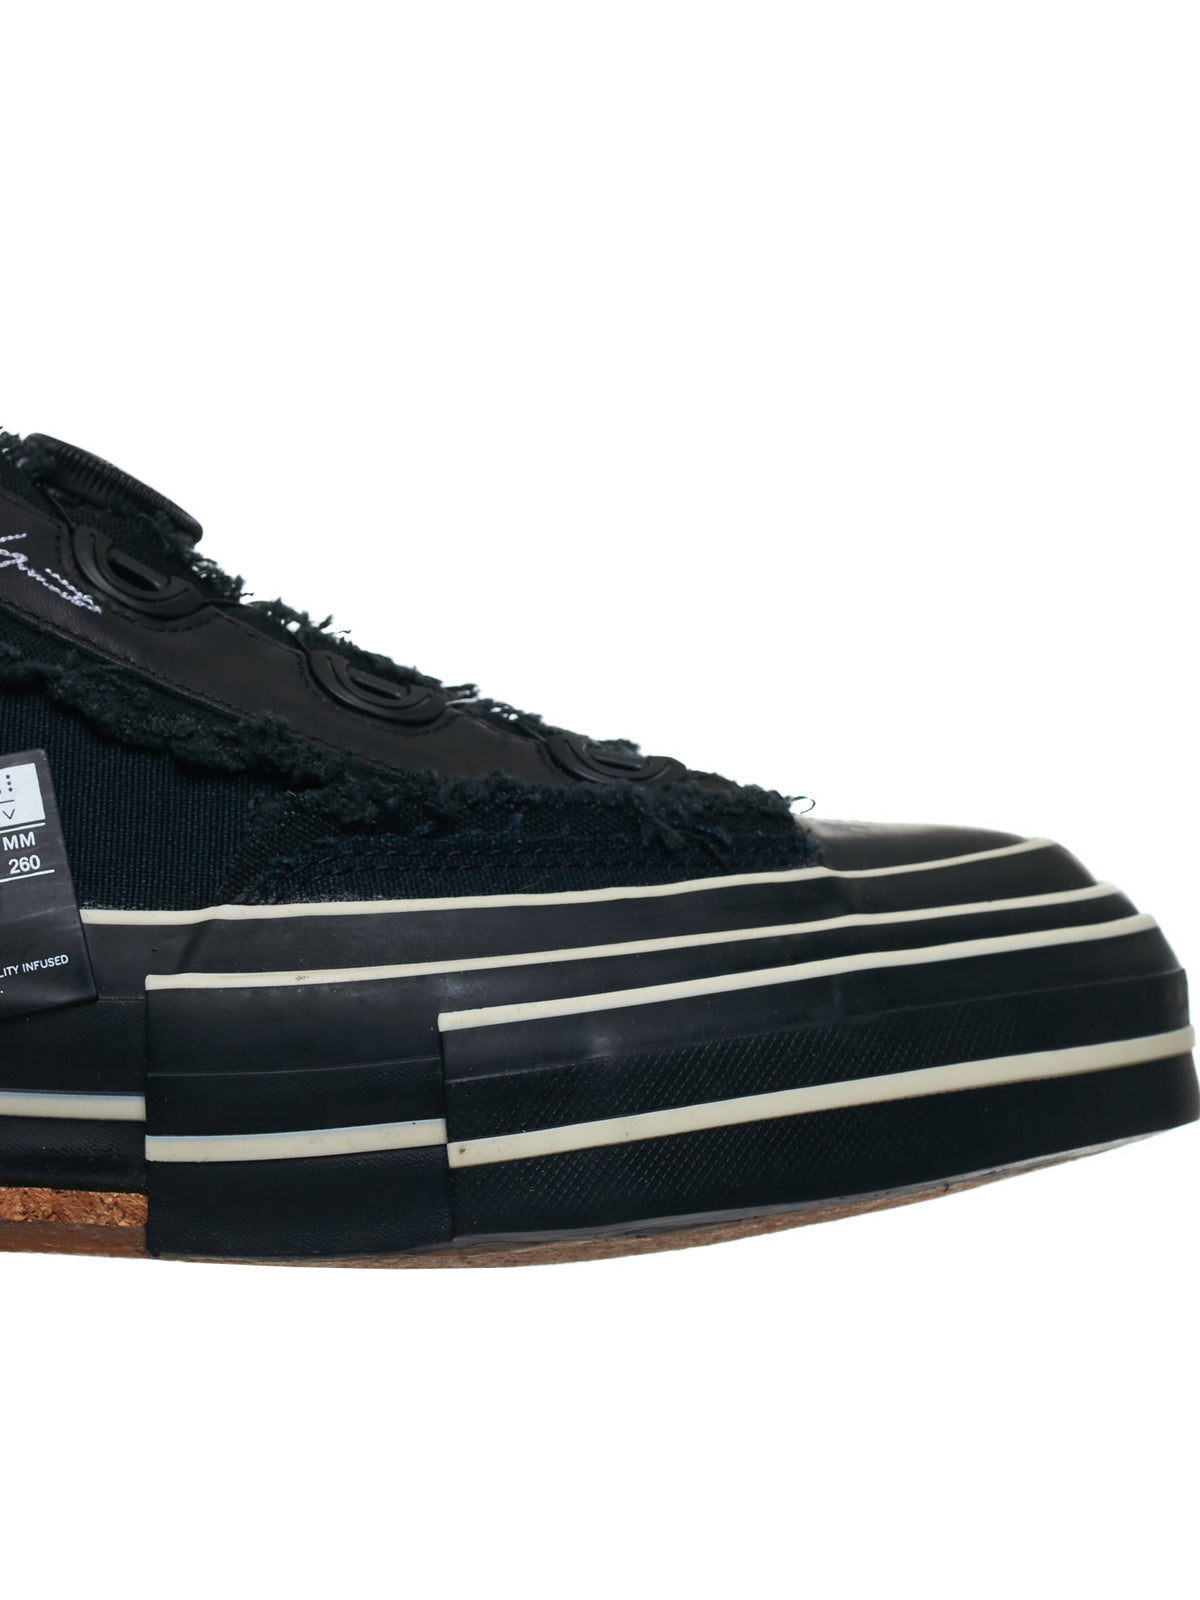 Patchwork Platform Sole Sneakers (FN-E02-061-BLACK)